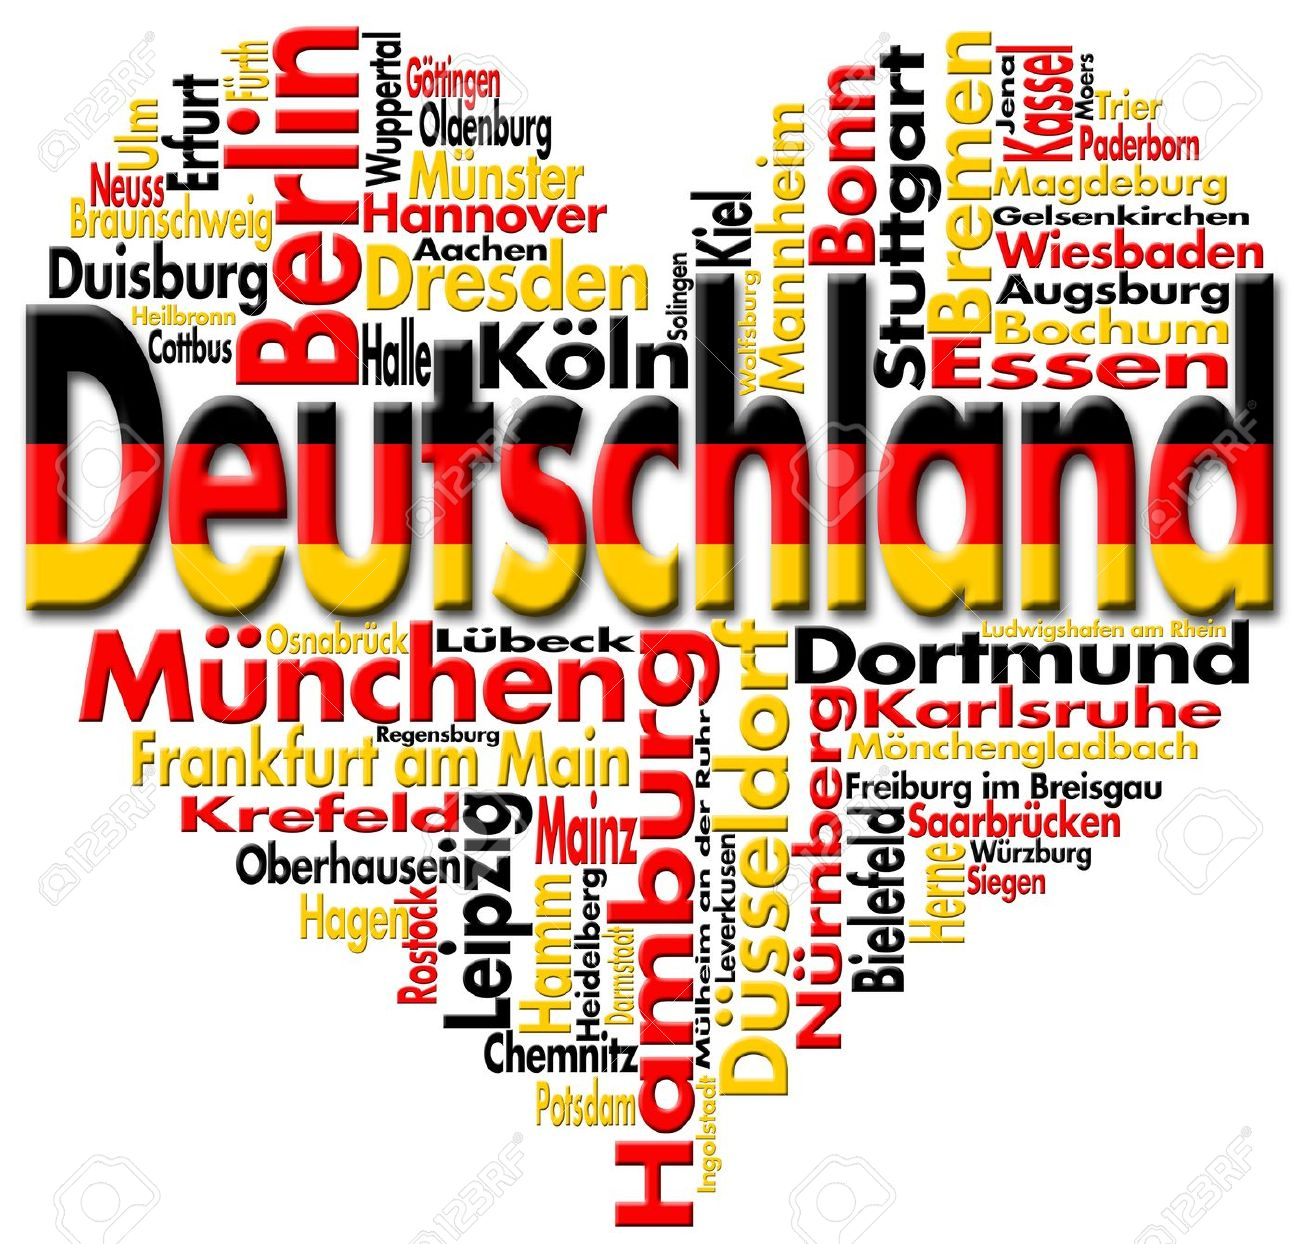 11588300-written-deutschland-and-german-cities-with-heart-shaped-german-flag-colors-stock-photo.jpg